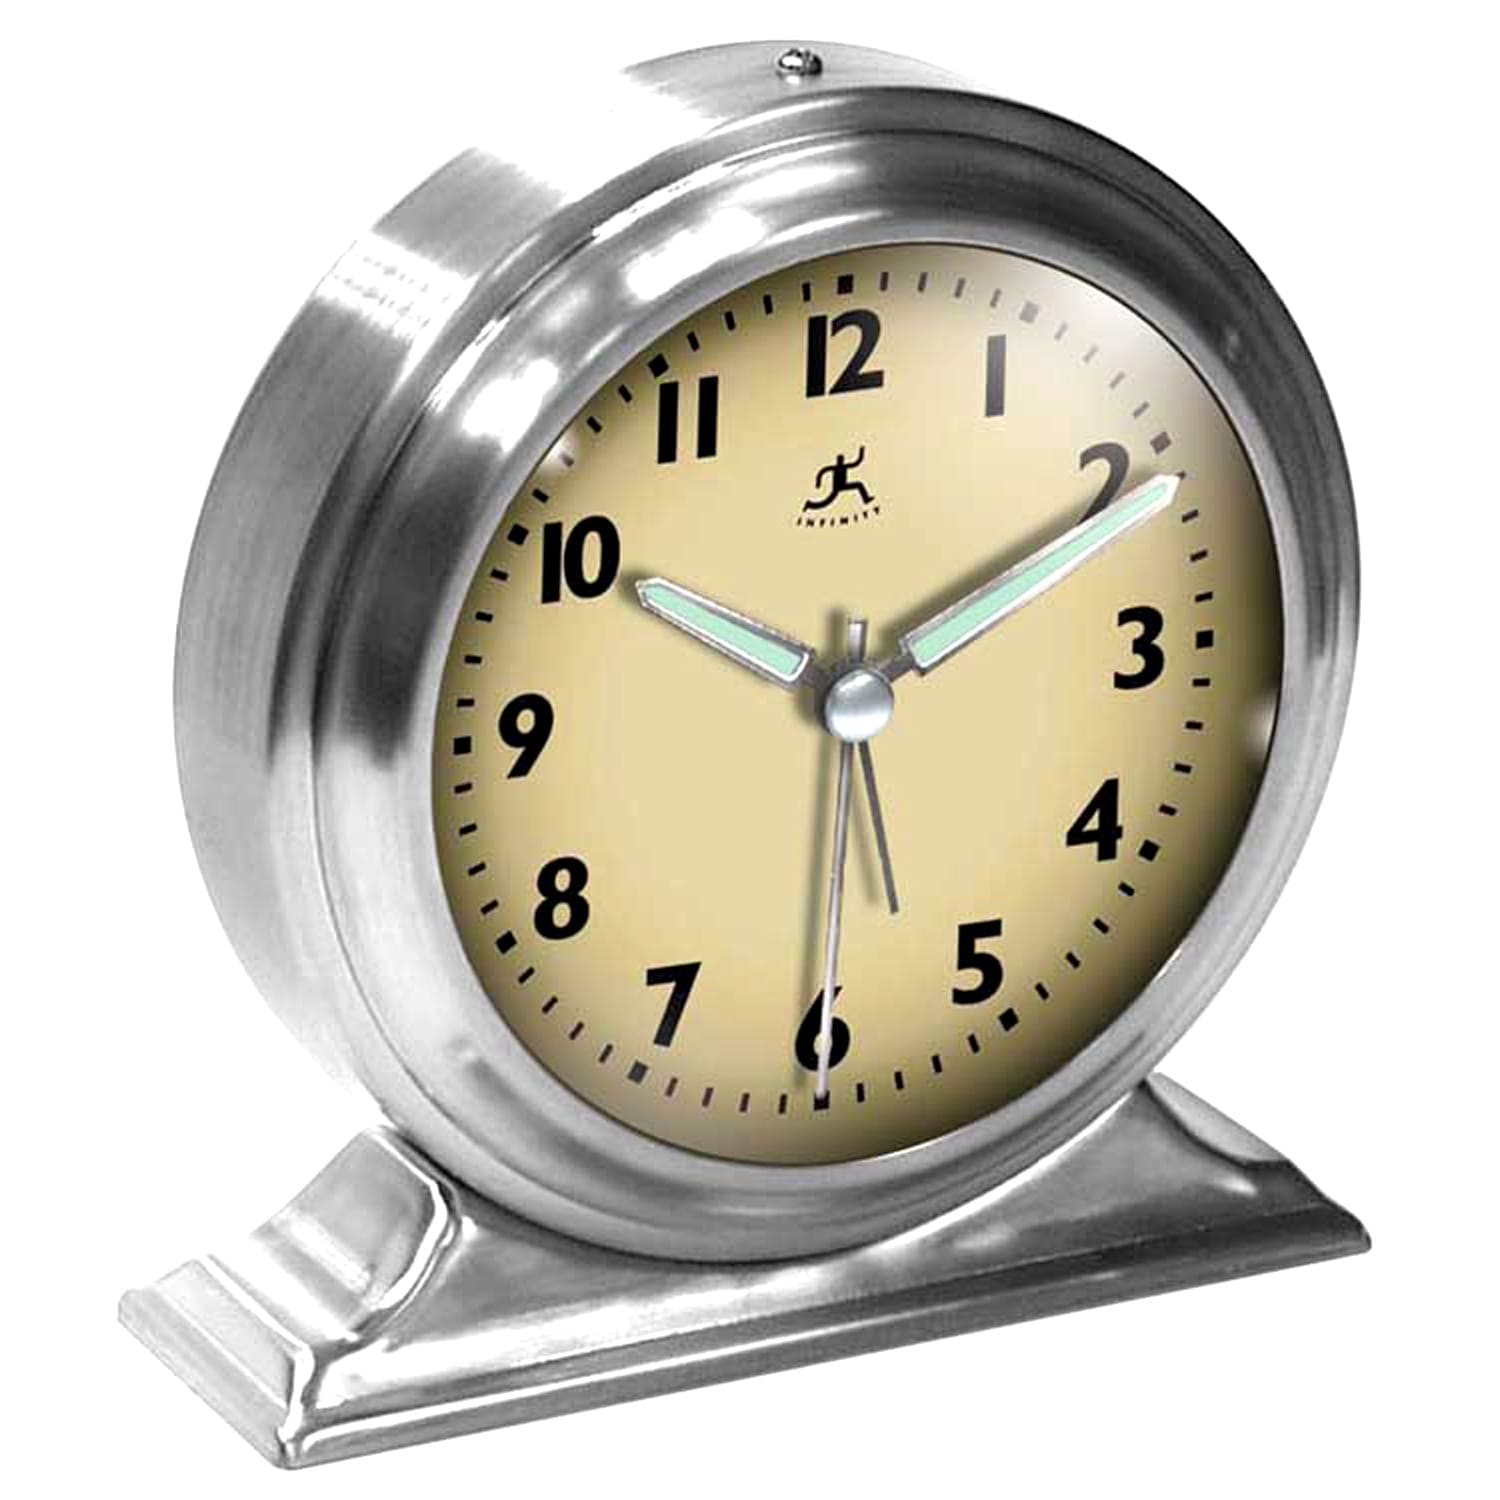 High Quality Infinity Instruments Boutique Alarm Tabletop Clock   Free Shipping On  Orders Over $45   Overstock   20562202